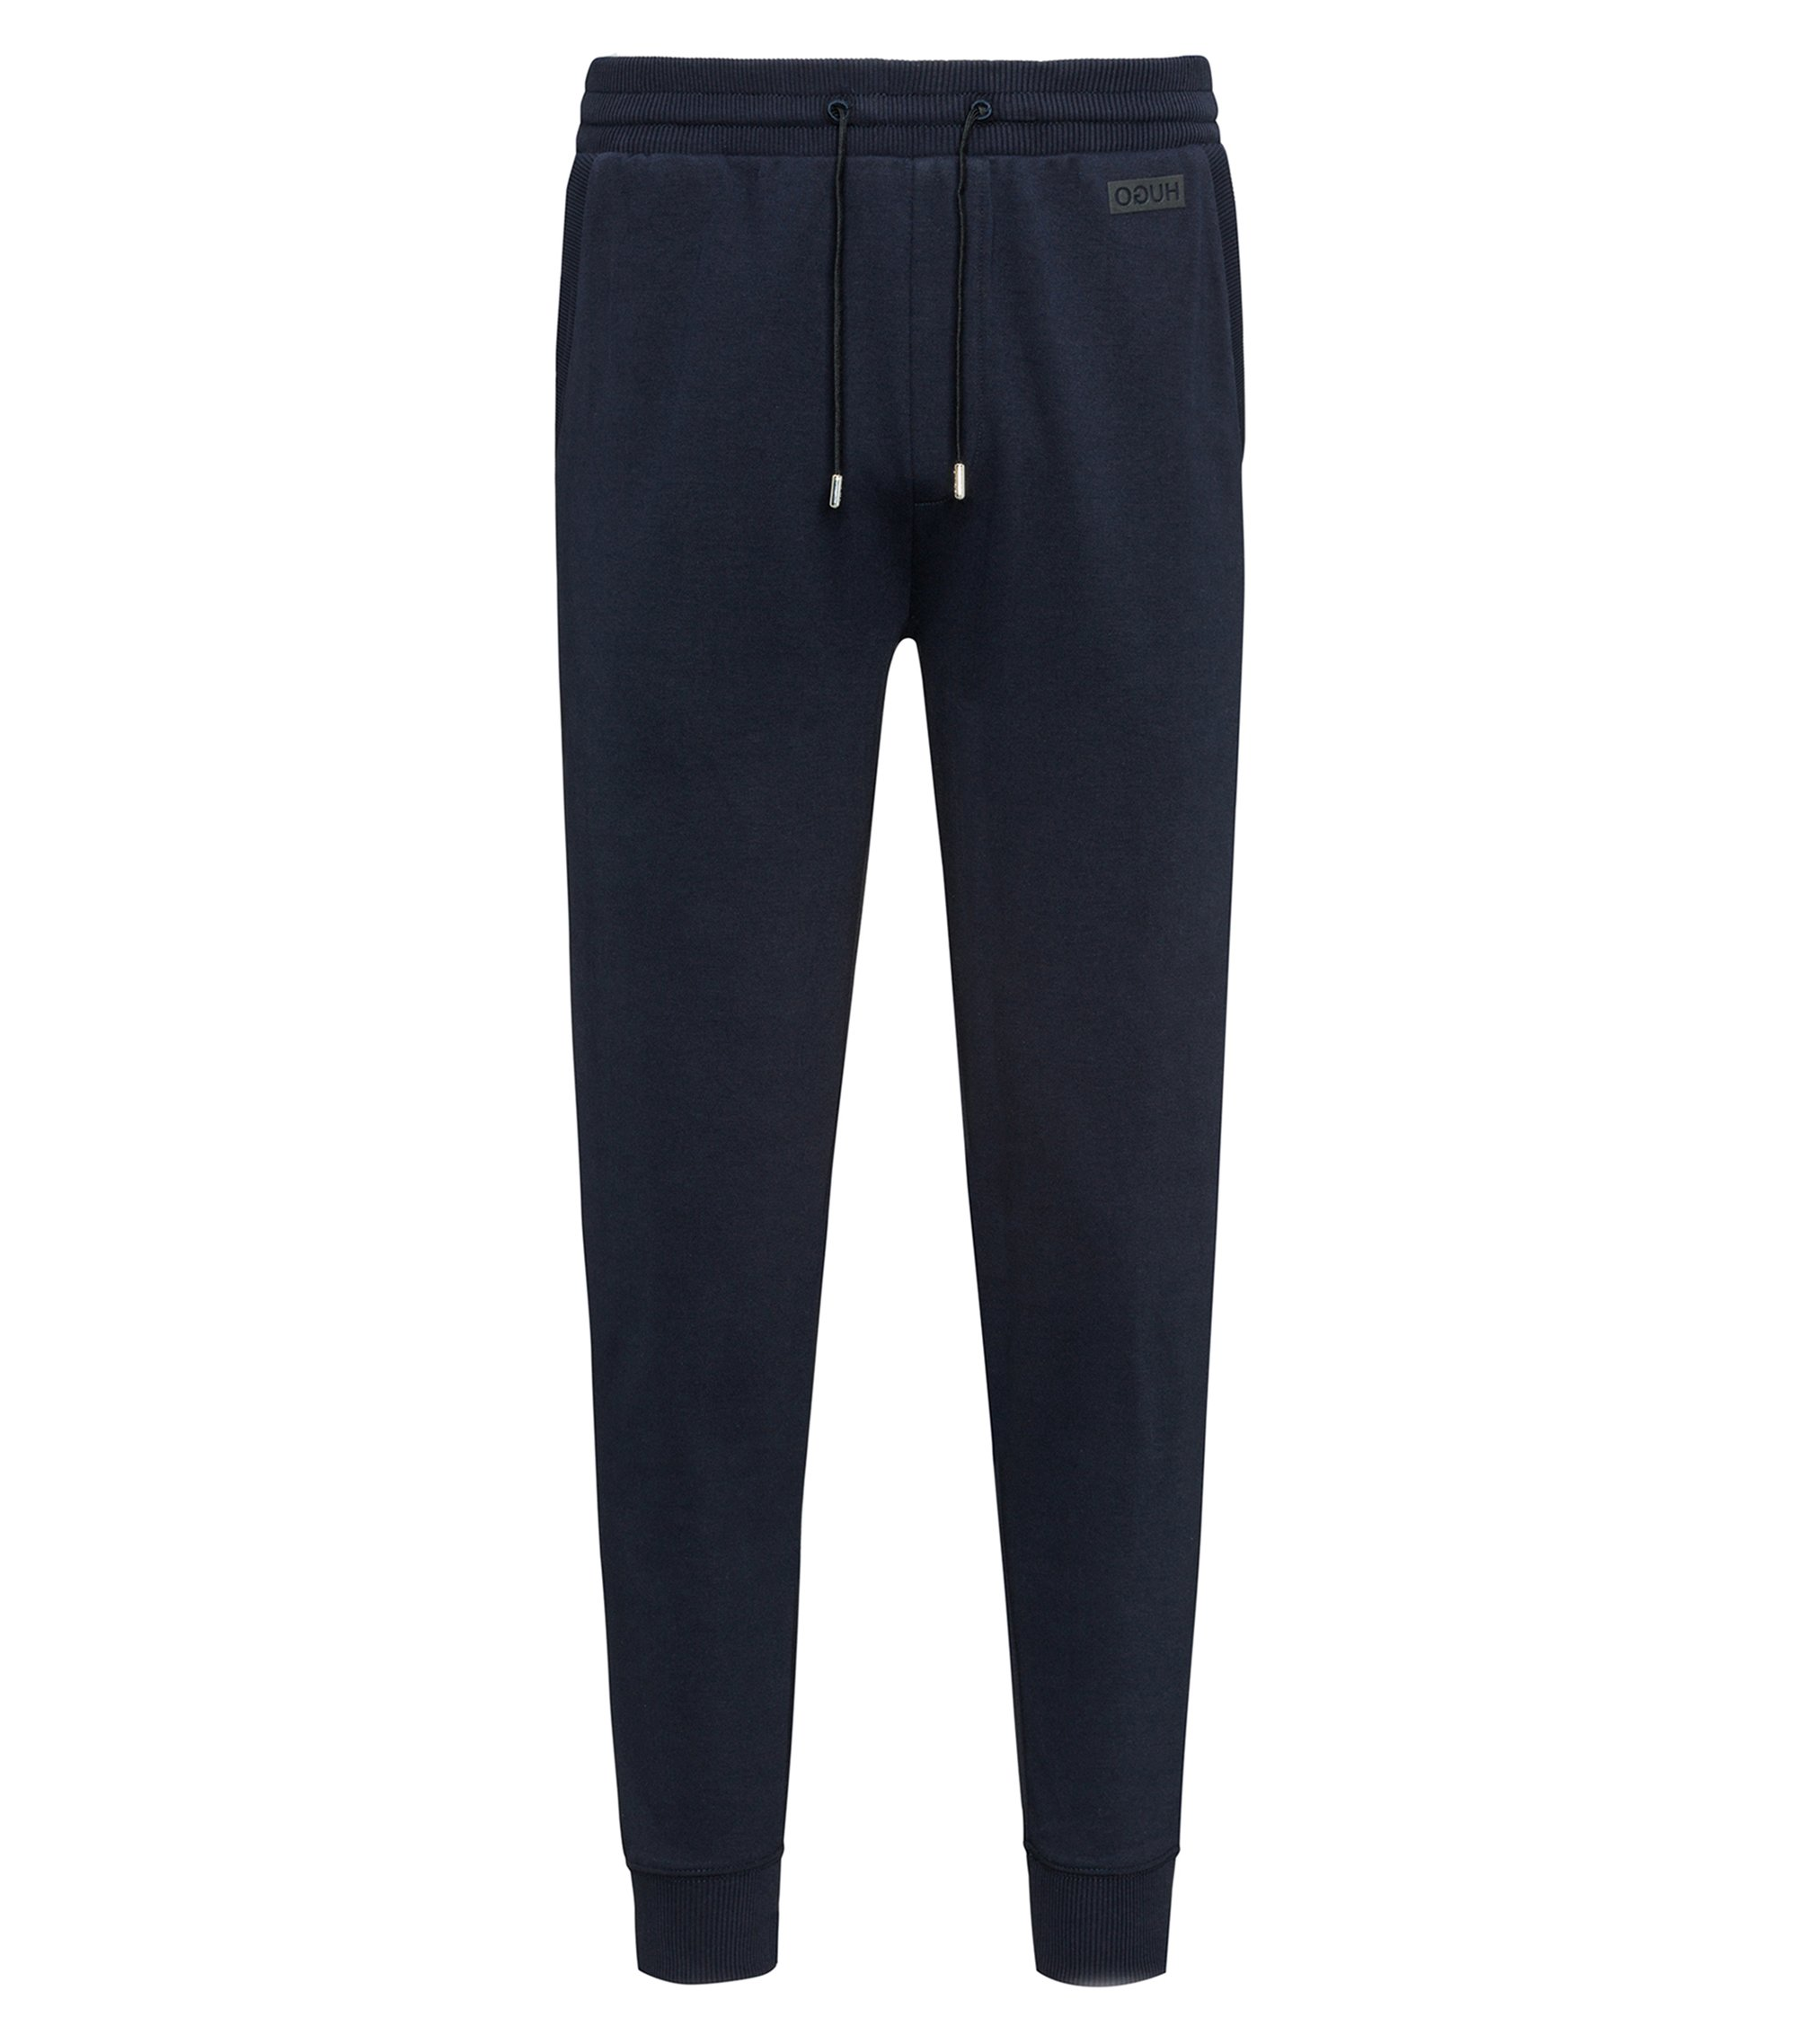 Pantaloni regular fit in cotone intrecciato, Blu scuro